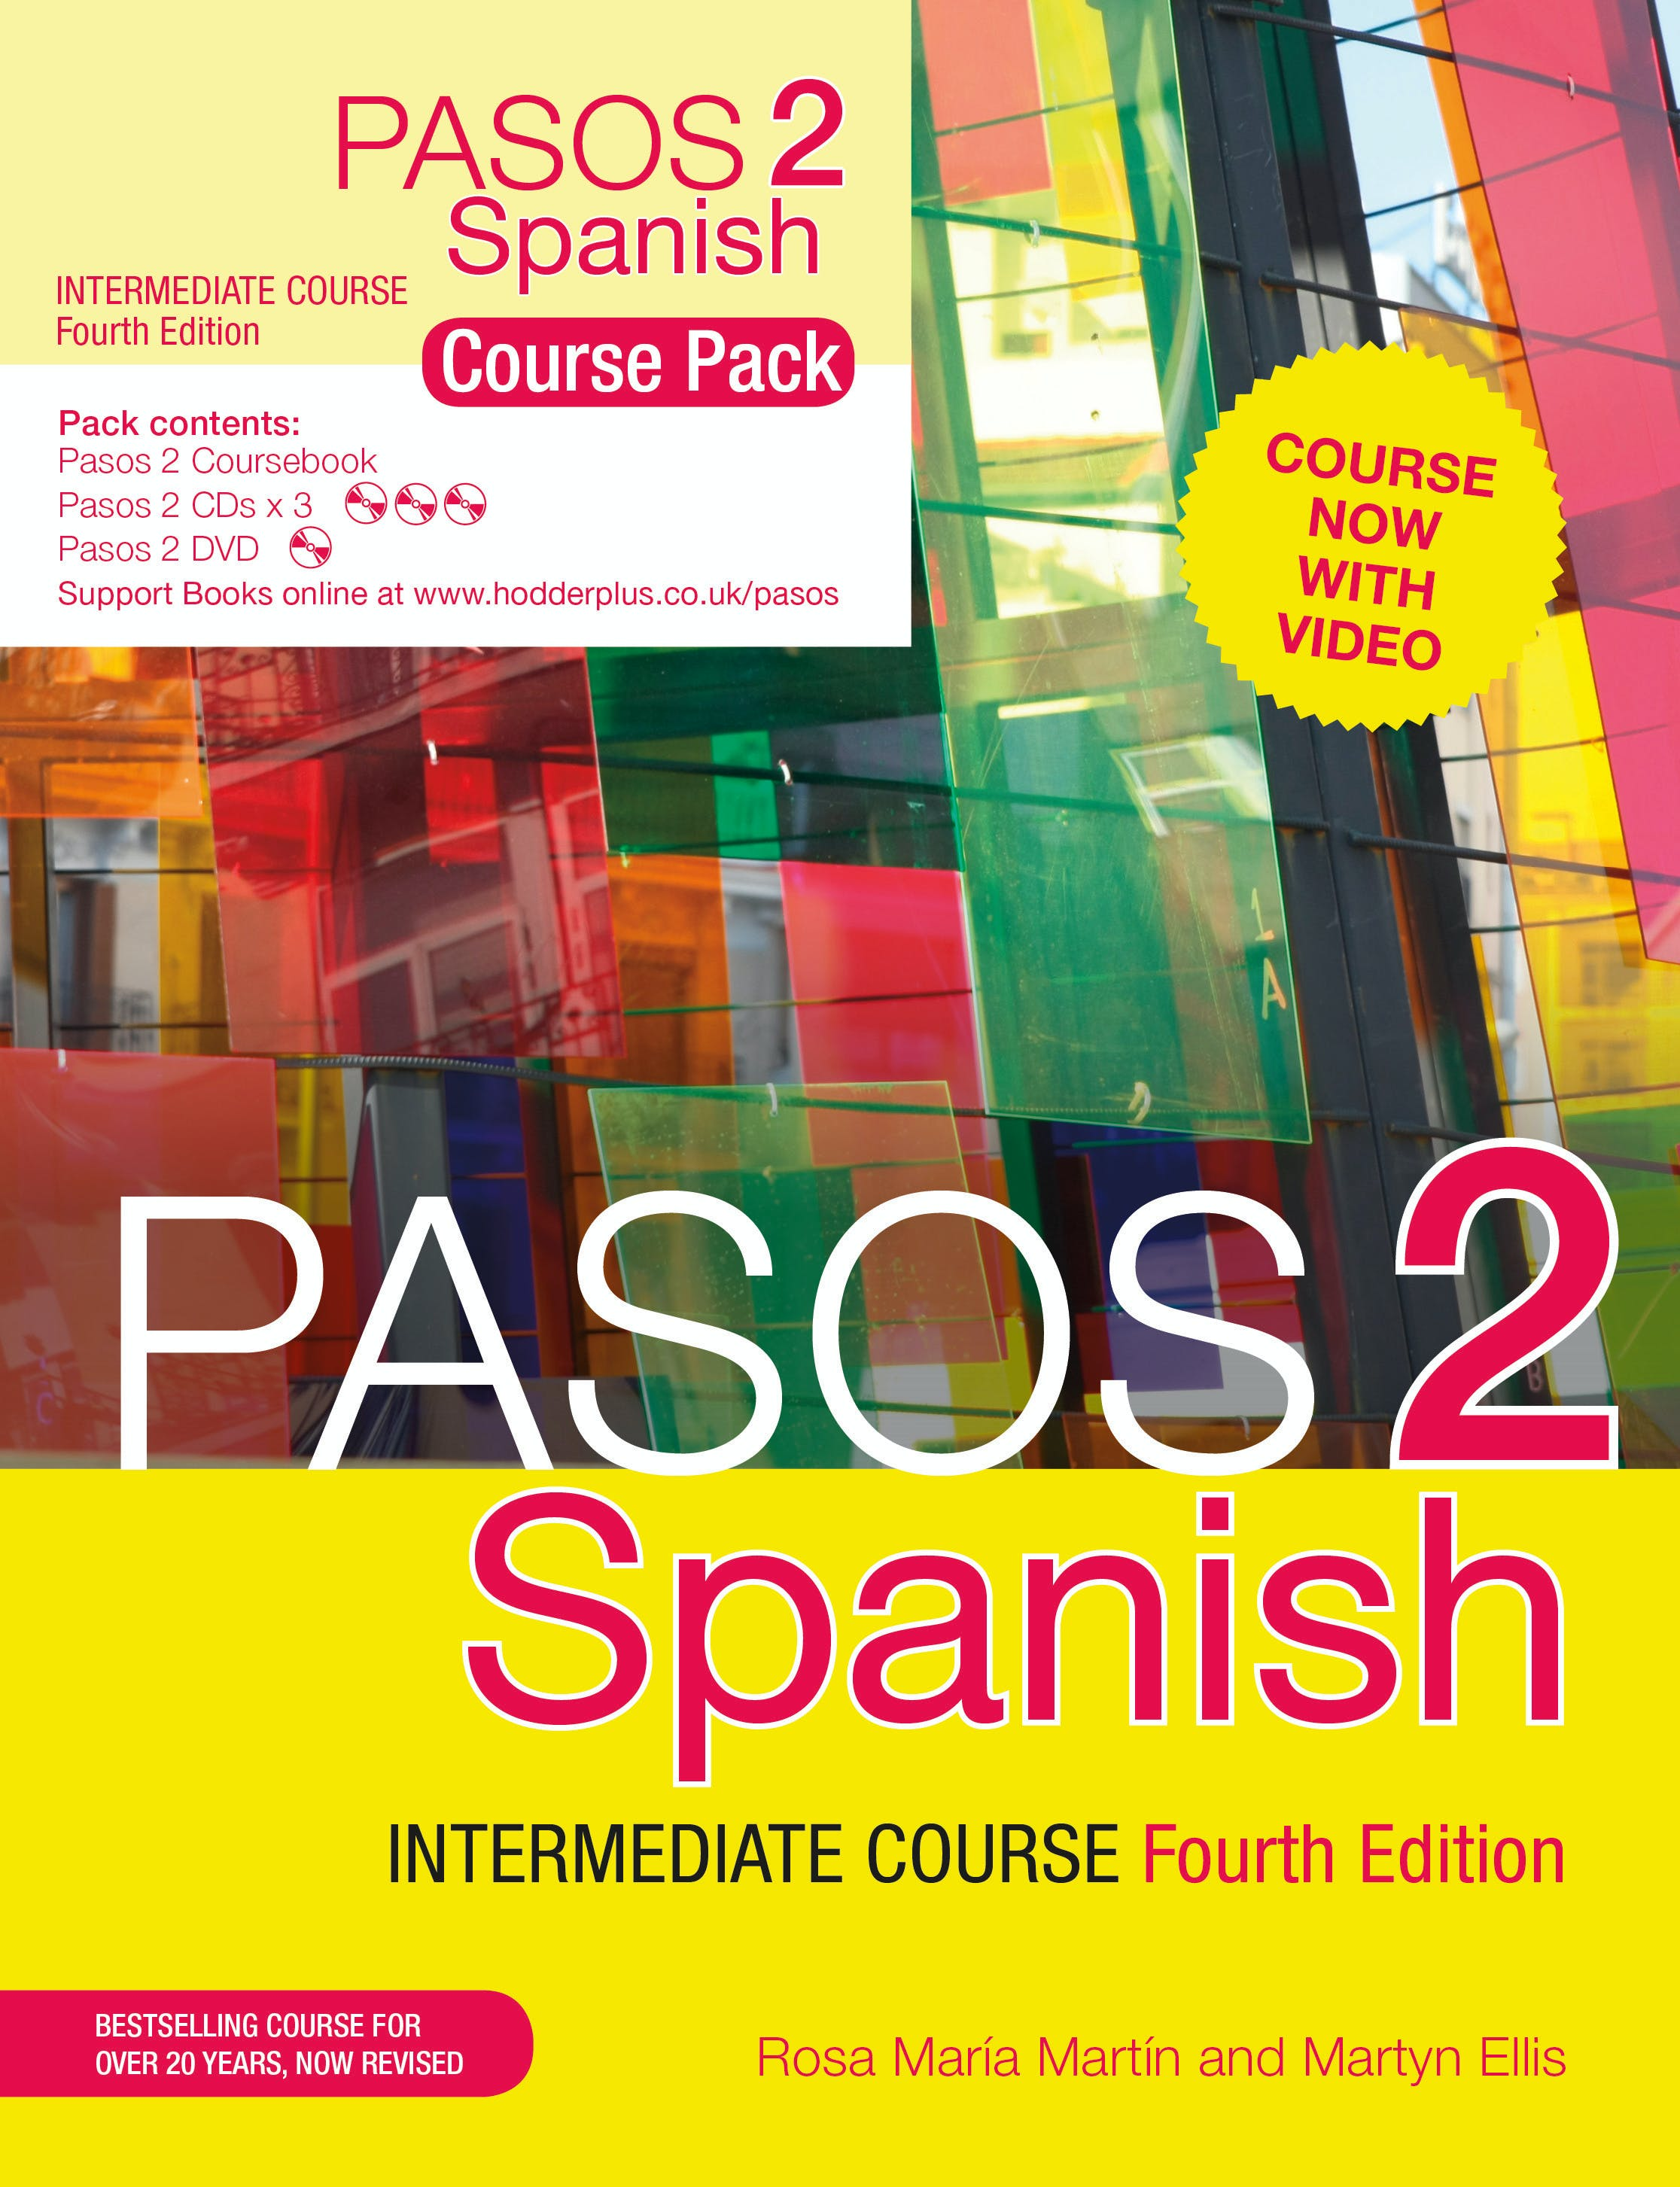 Pasos 2 (Fourth Edition) Spanish Intermediate Course by